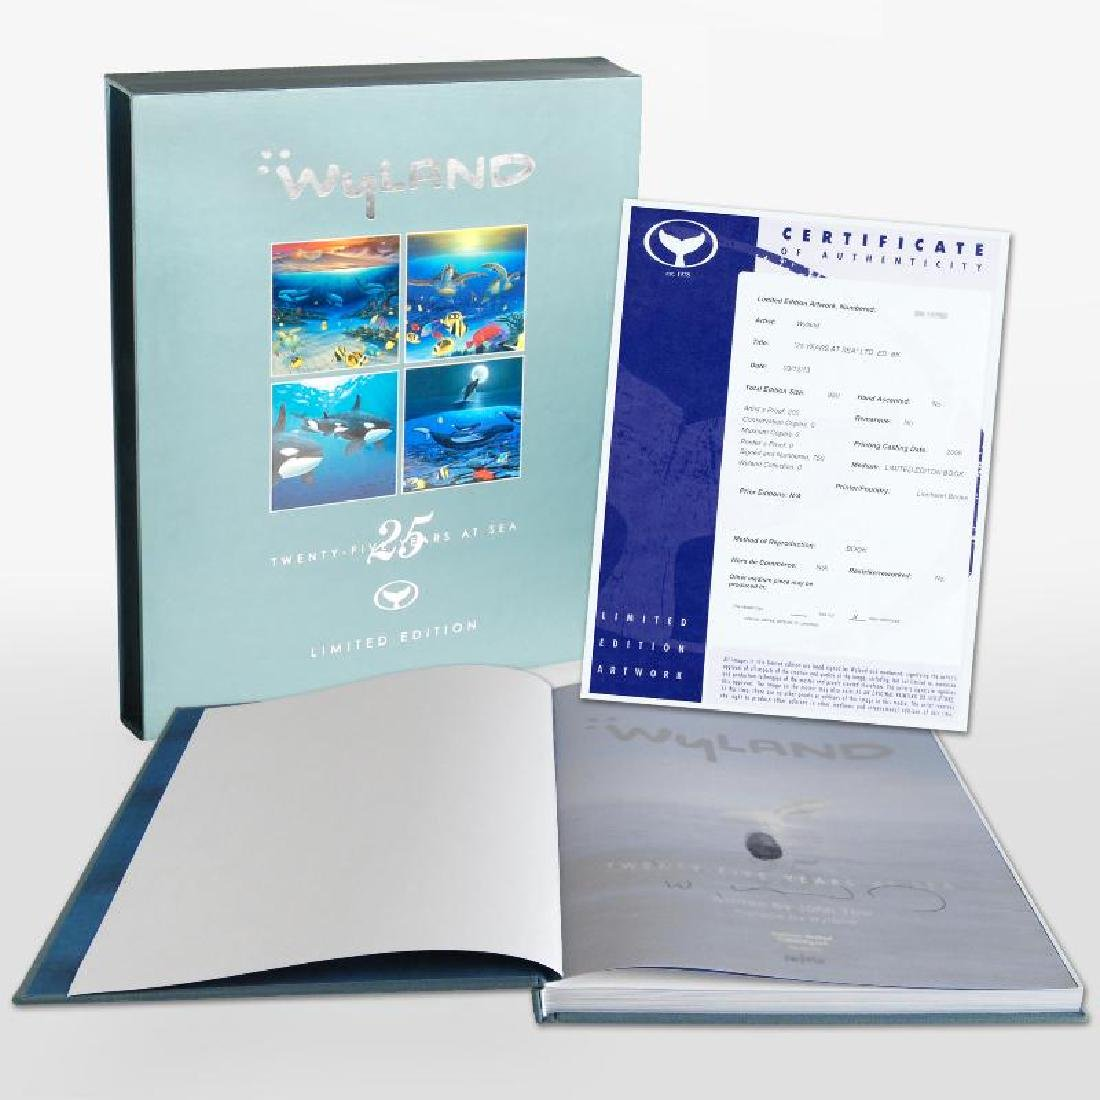 Wyland: 25 Years at Sea (2006) Limited Edition - 4